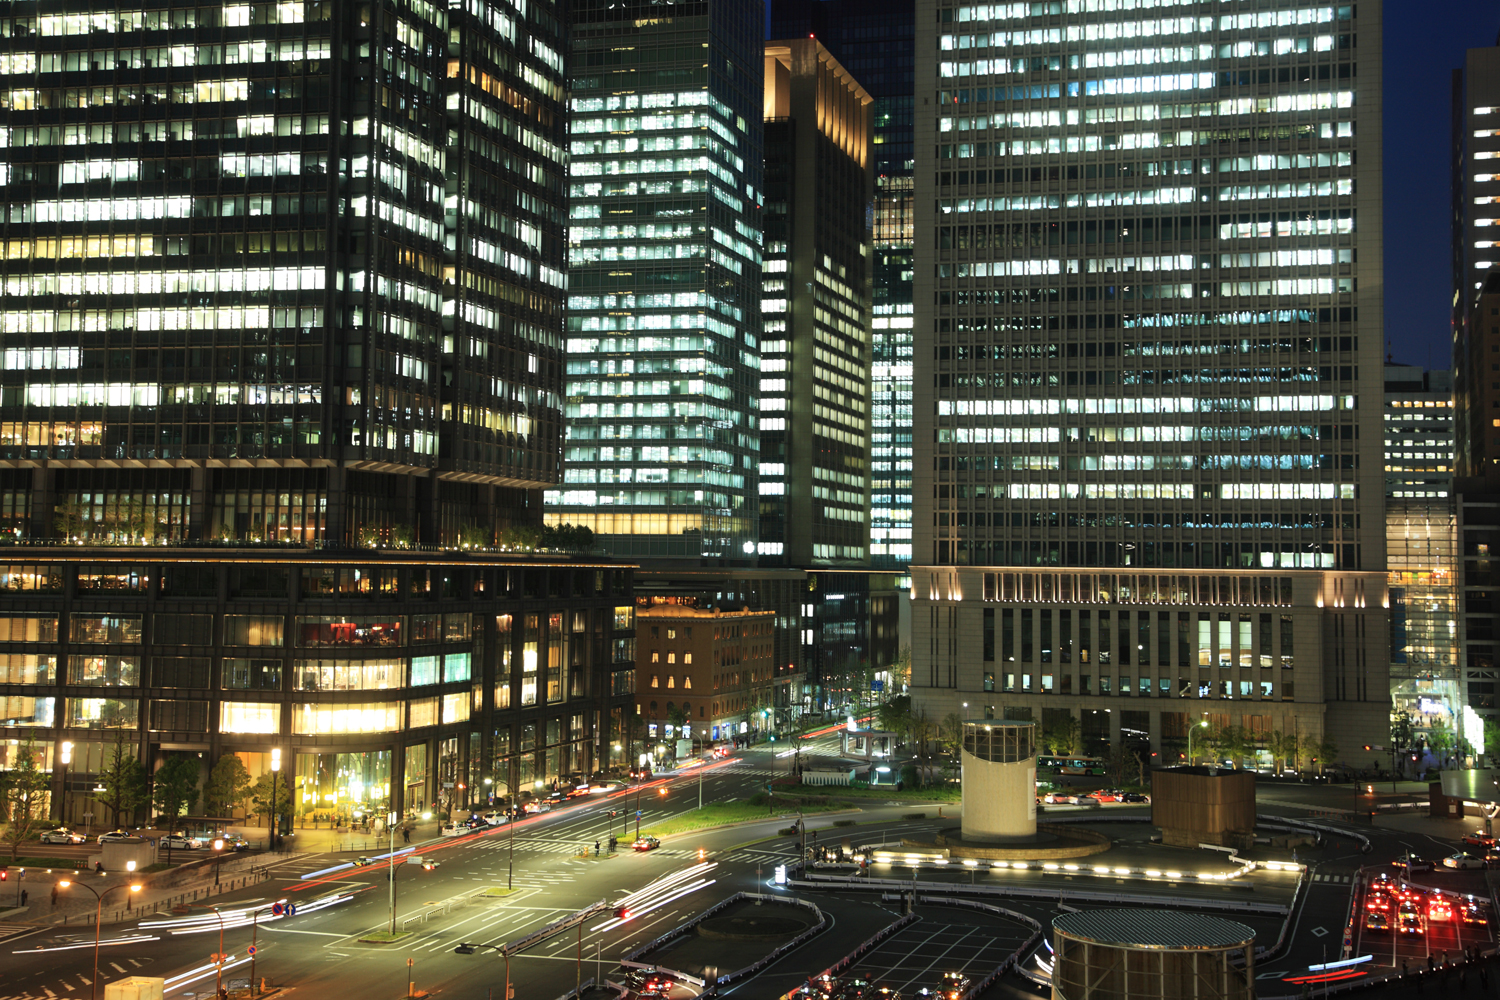 The Marunouchi district of Tokyo, Japan.